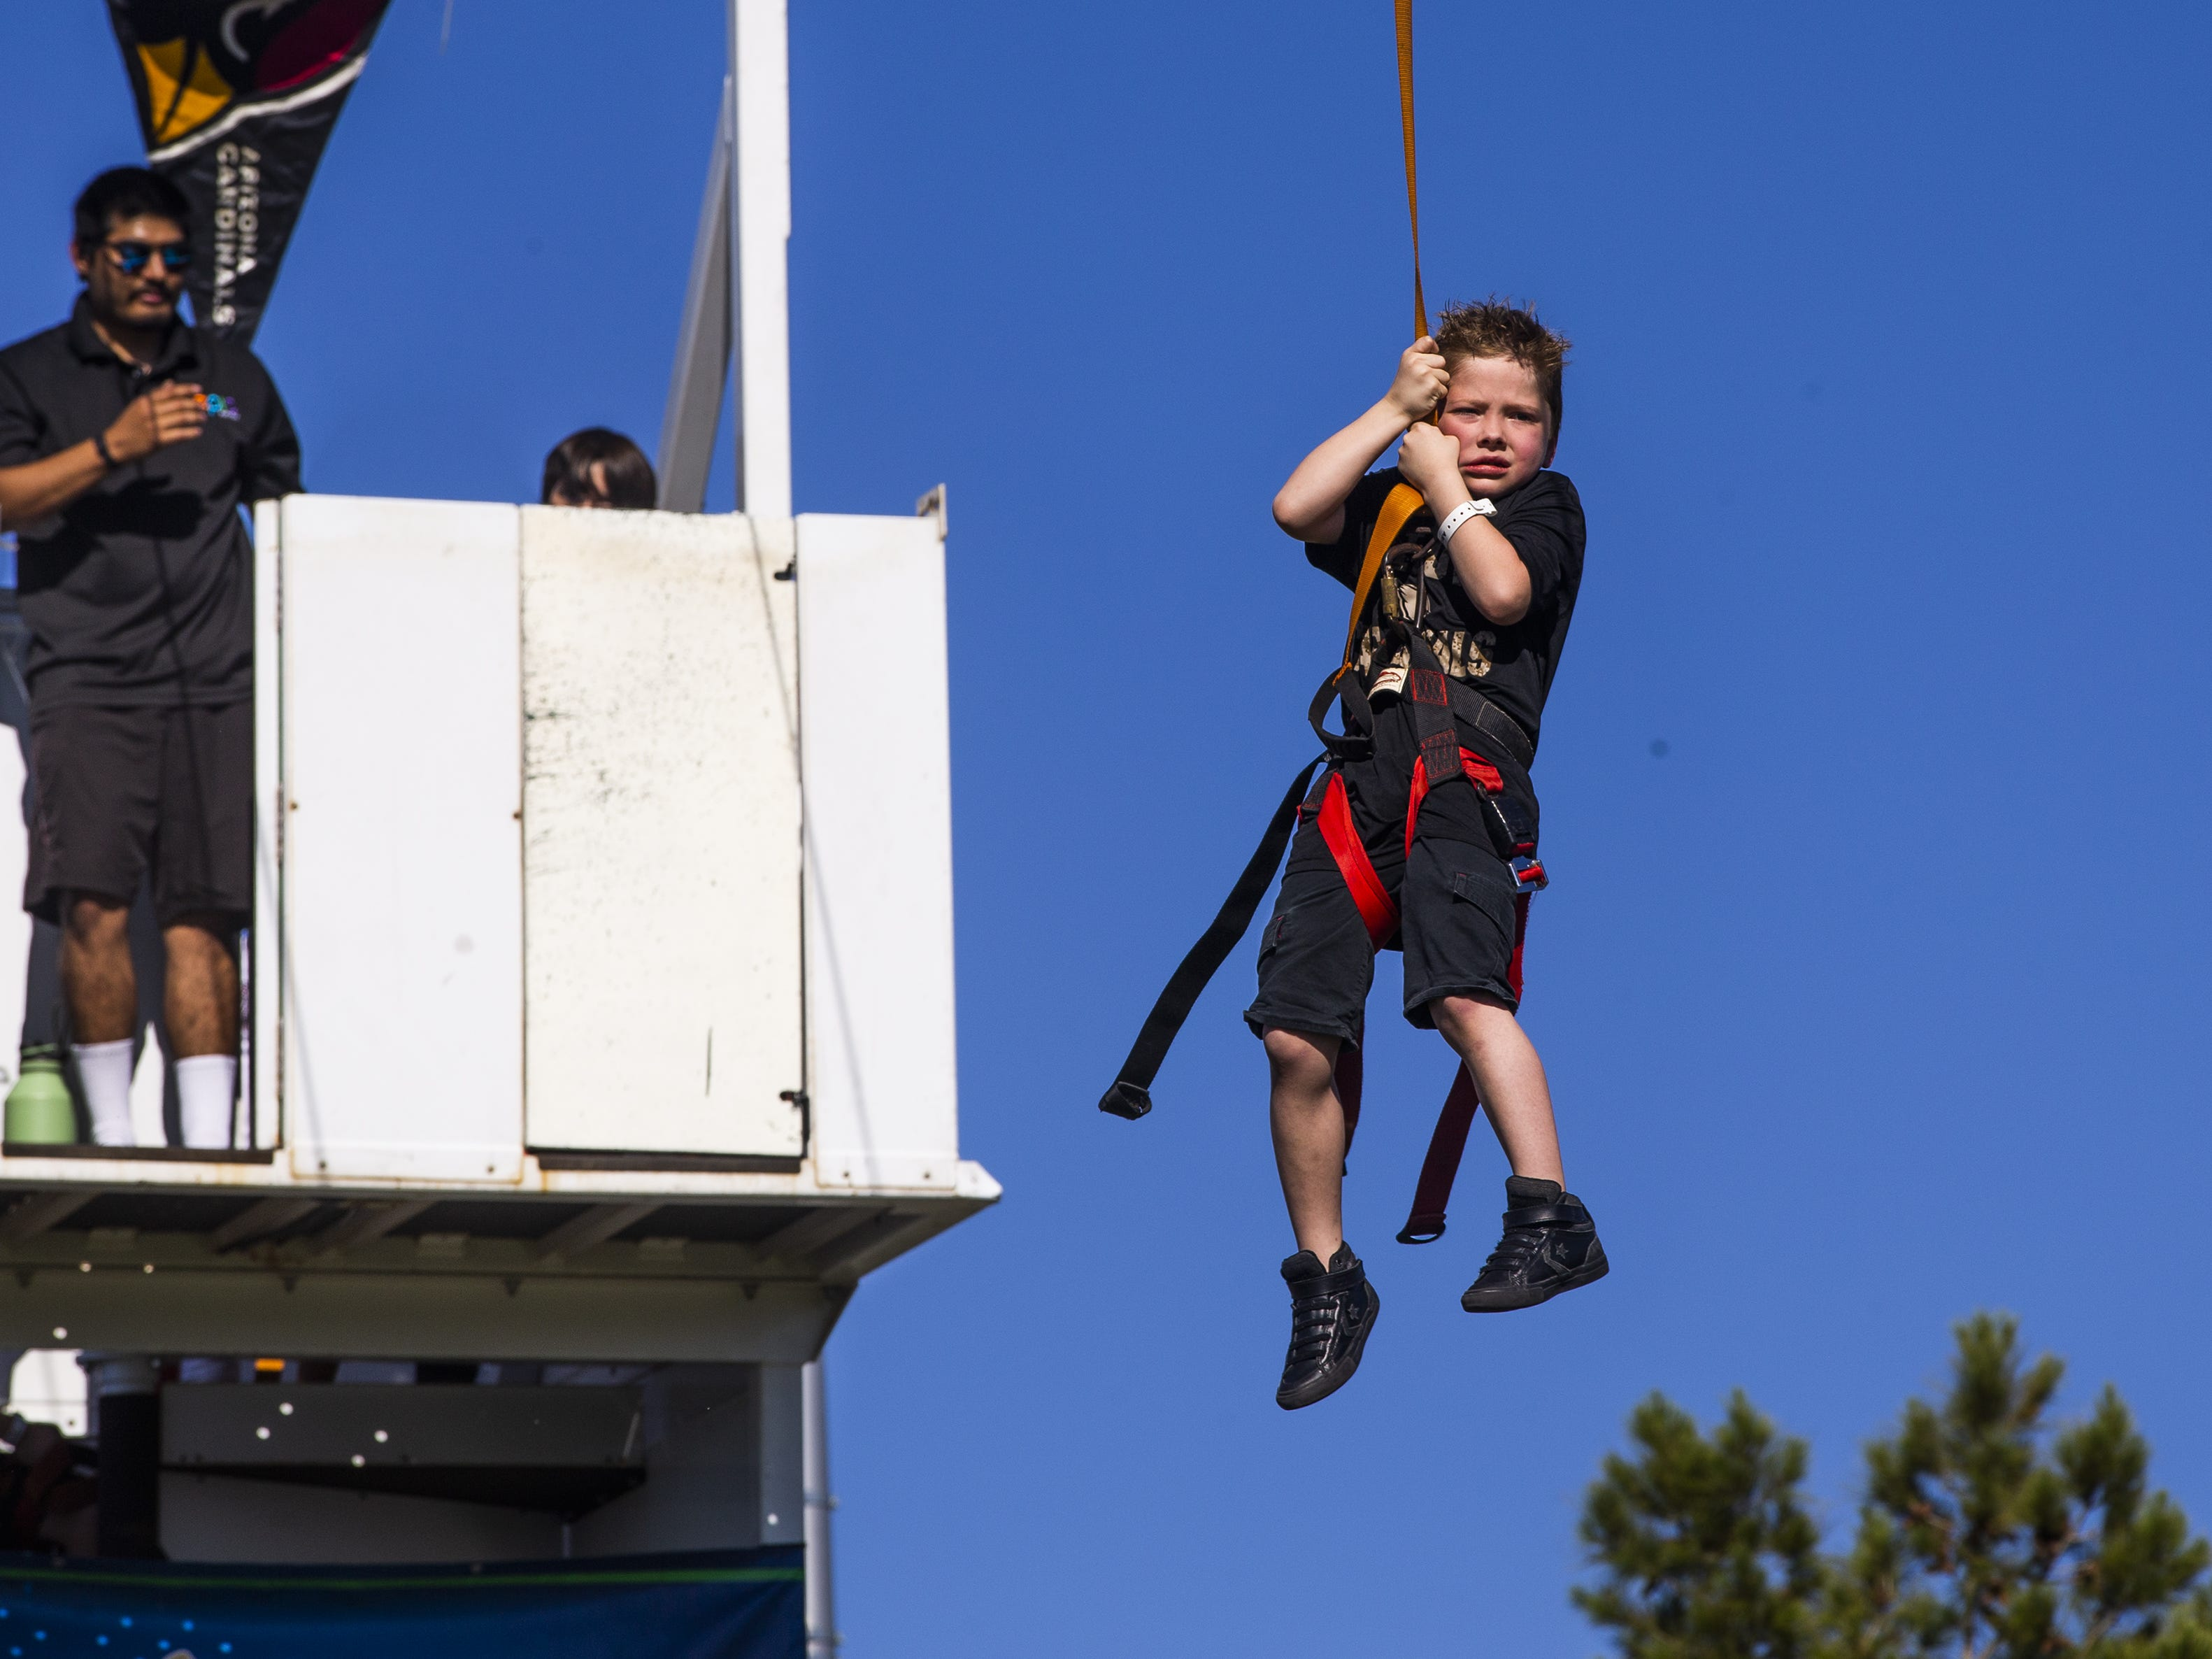 Austin Nevarez, 10, Glendale, slides down the zipline at the NFL Draft party on the Great Lawn outside State Farm Stadium, Thursday, April 25, 2019.